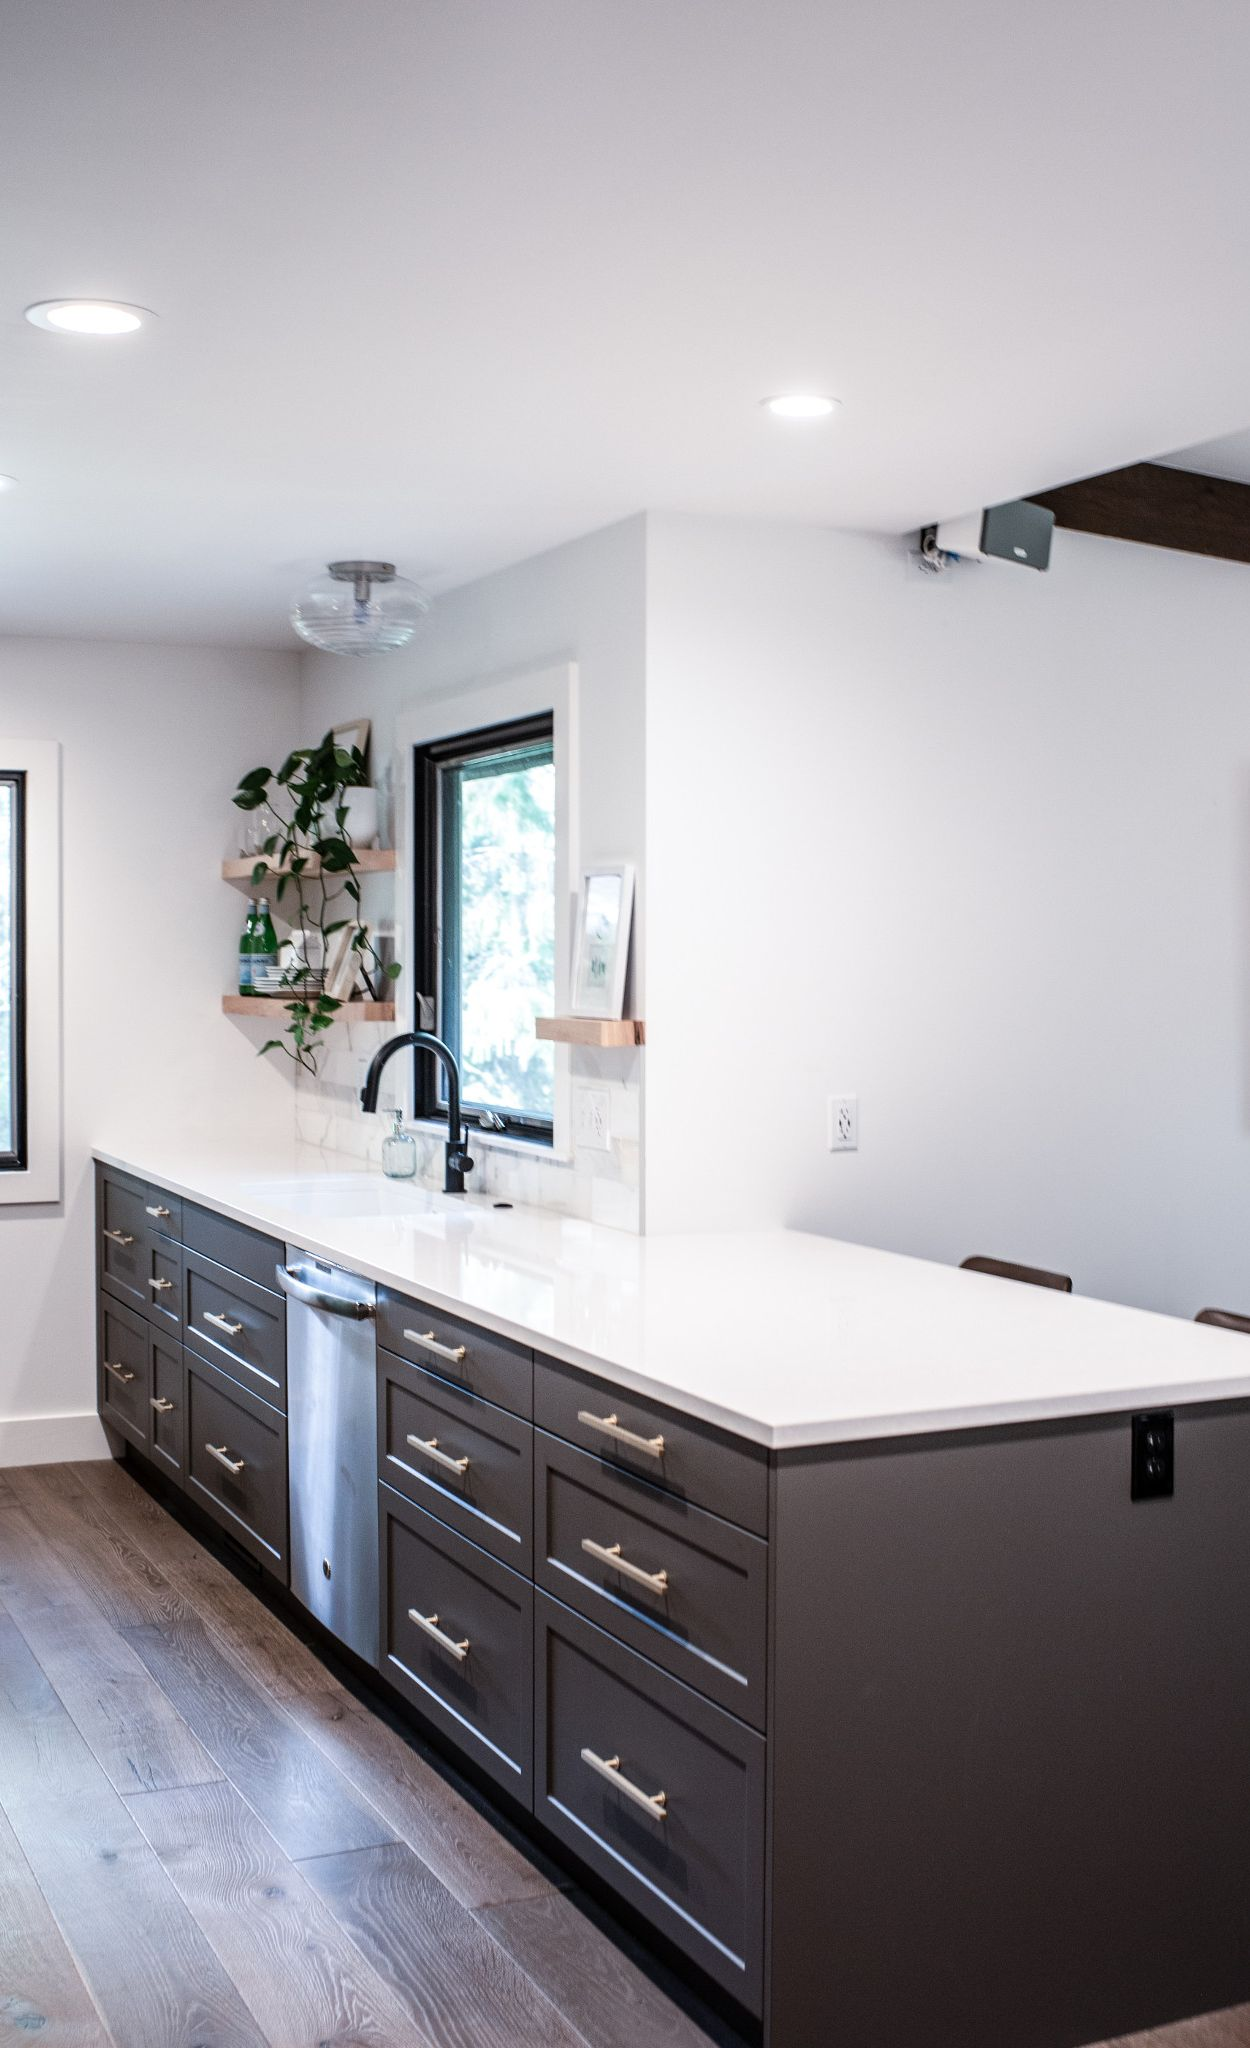 Cambria Newport kitchen remodel by contractor Casey Knips.